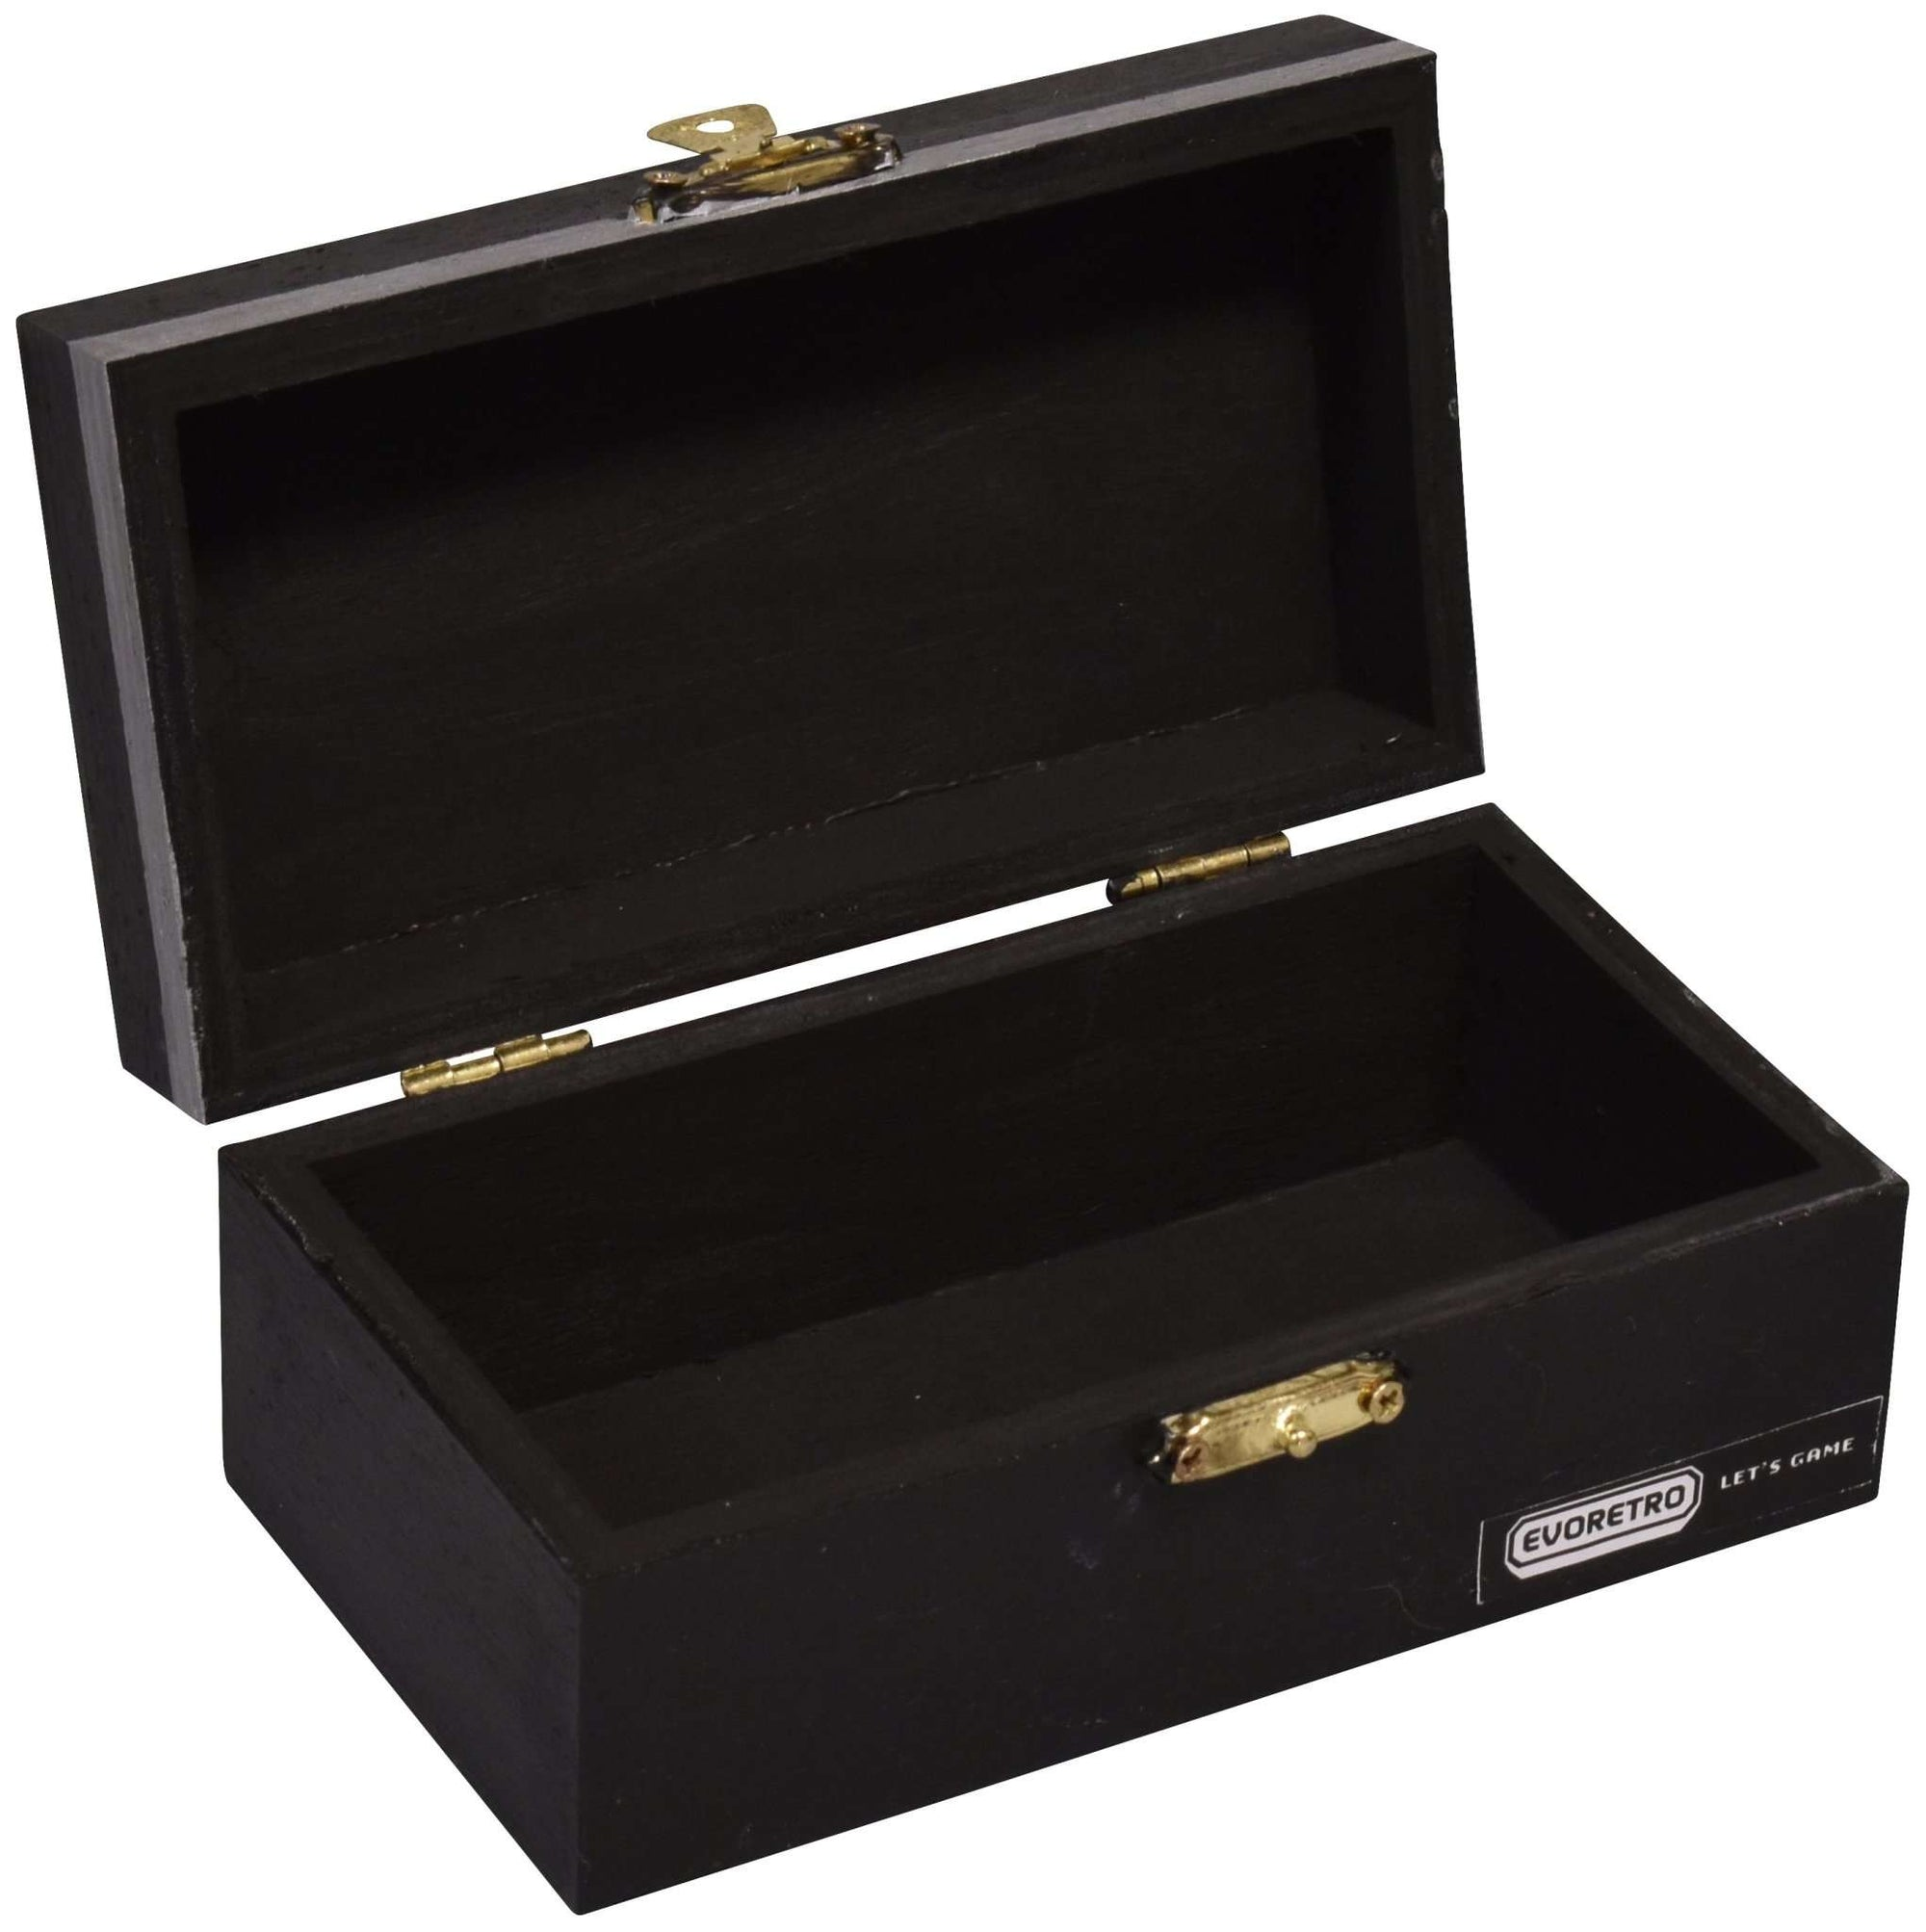 DECORATIVE BLACK MYSTERY BOX - EvoRetro Lets Game